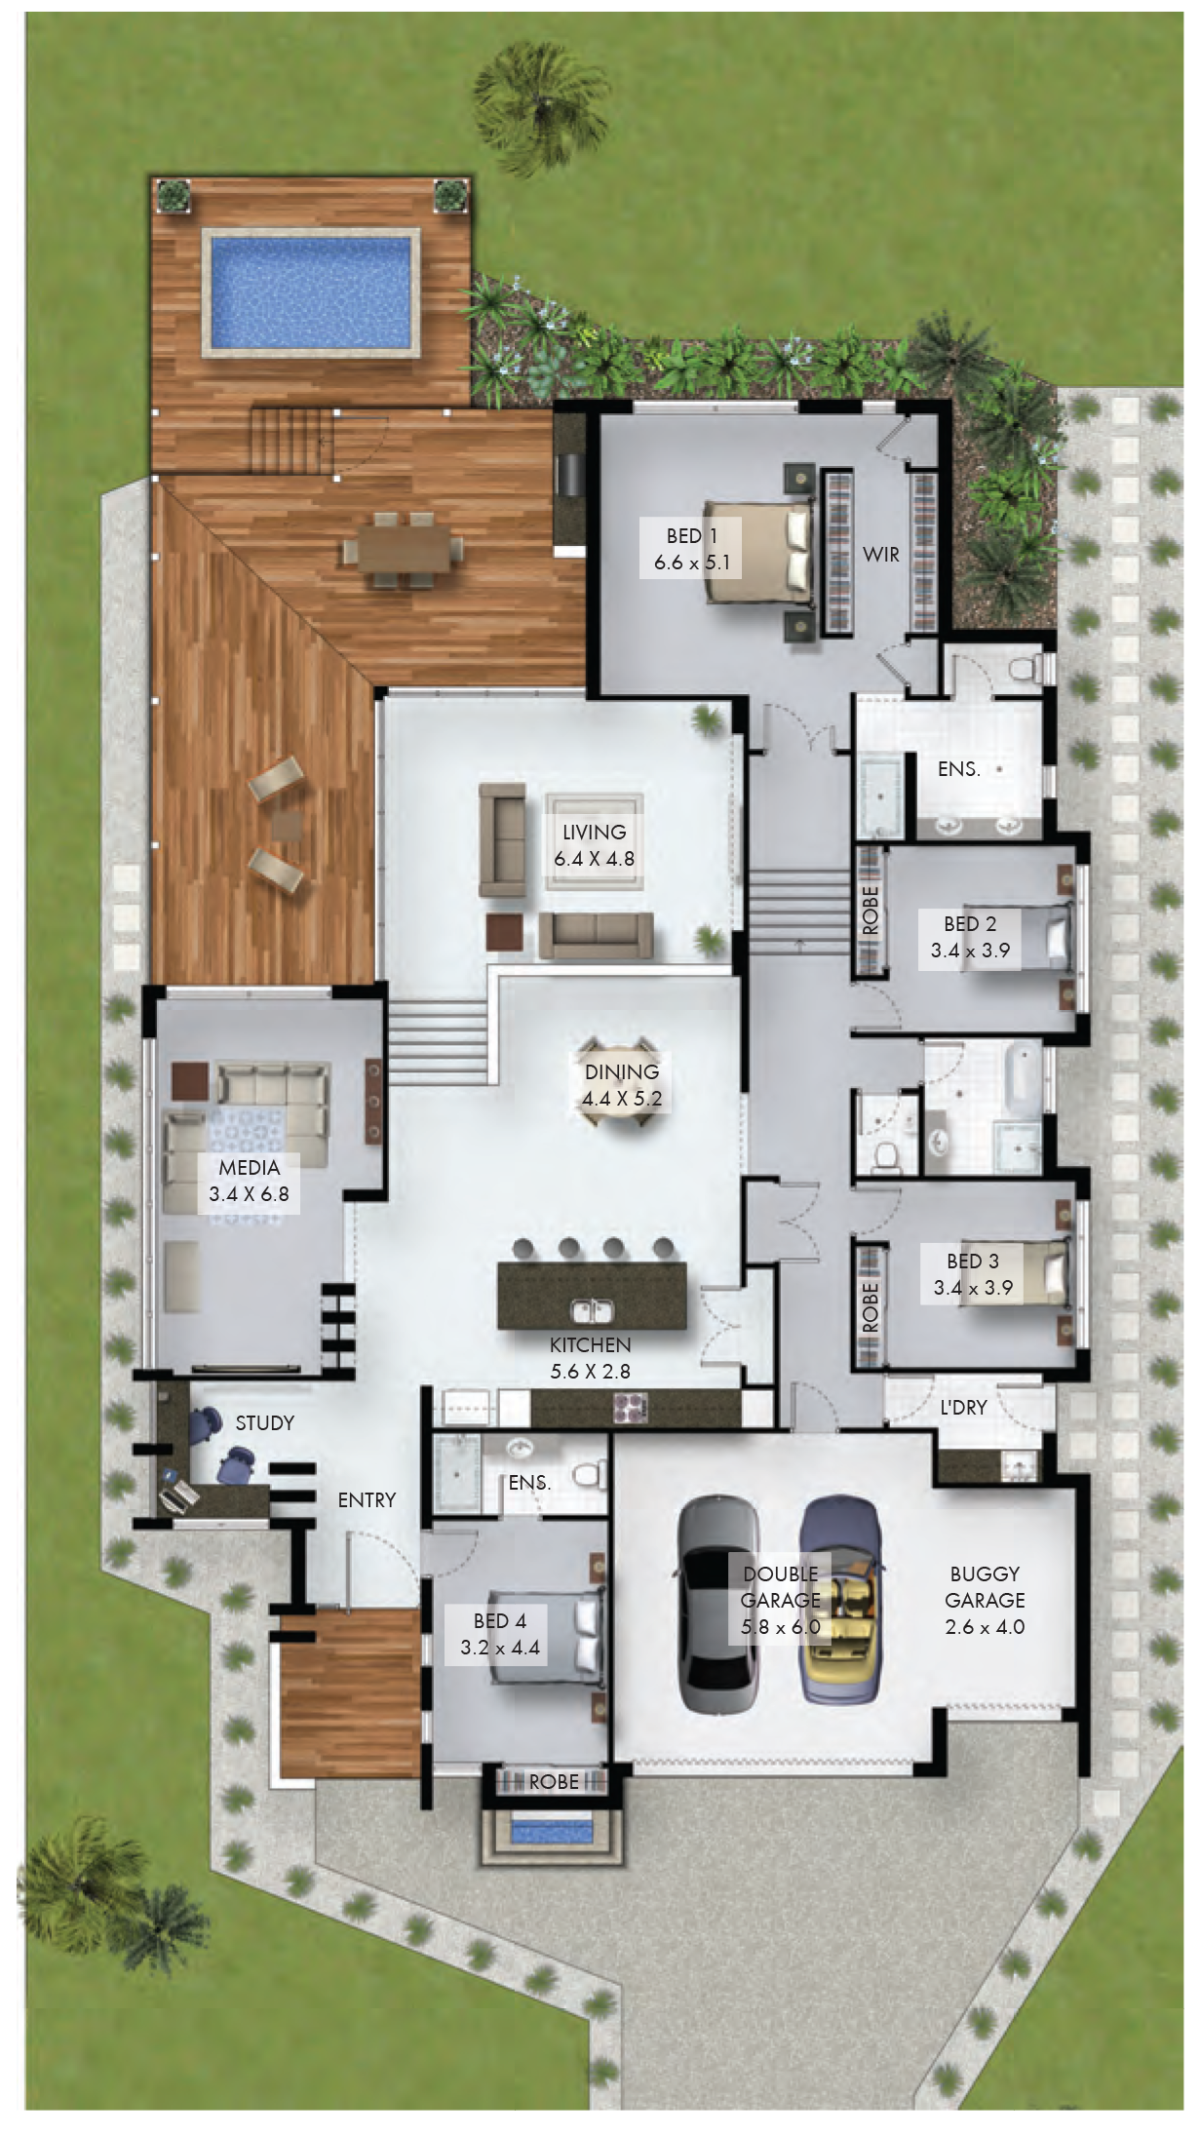 Floor Plan Friday: 4 bedroom home with study nook and triple car ...